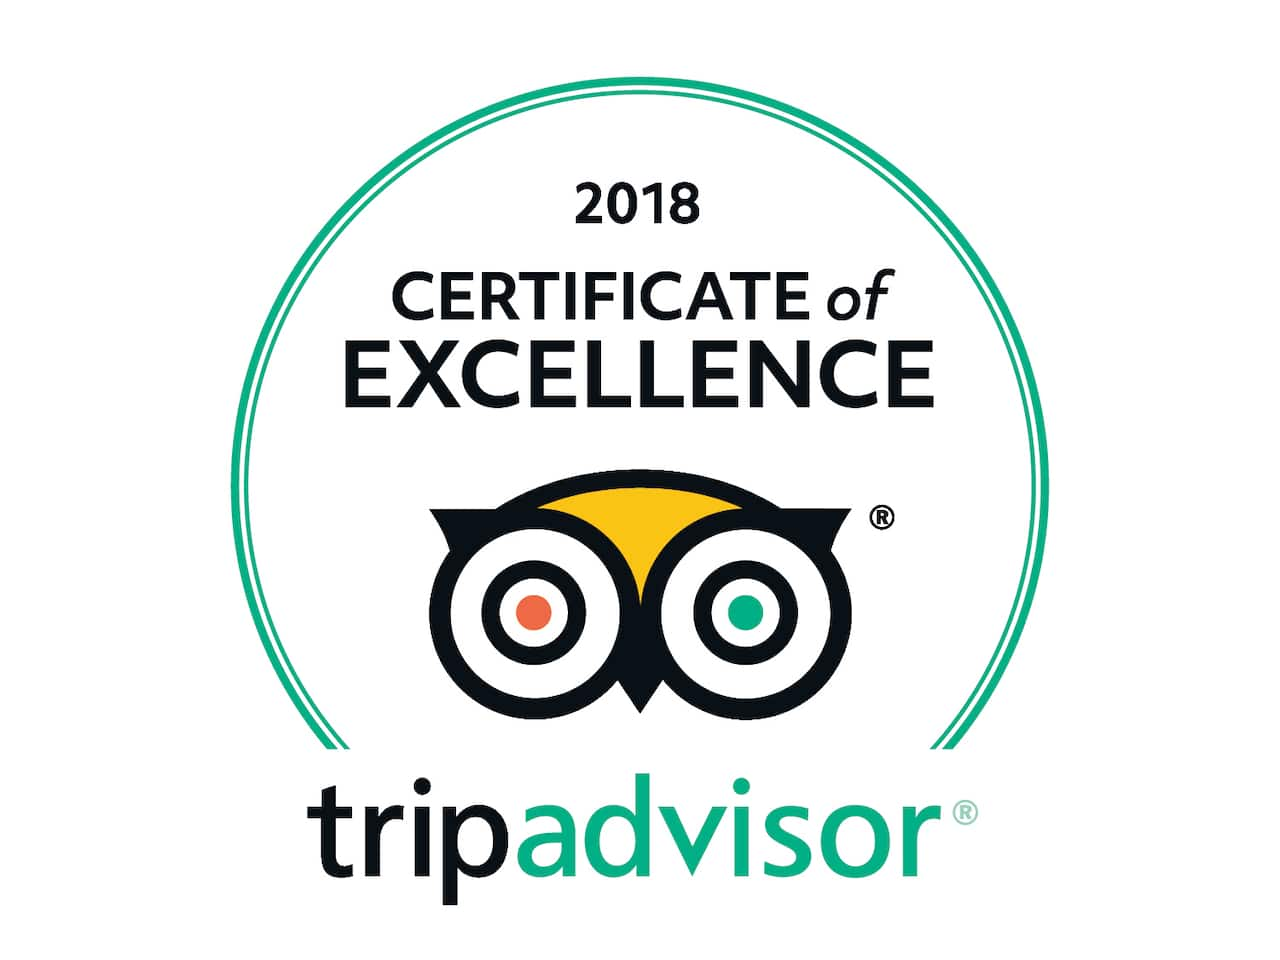 TripAdvisor Hall of Fame Certificate of Excellence logo